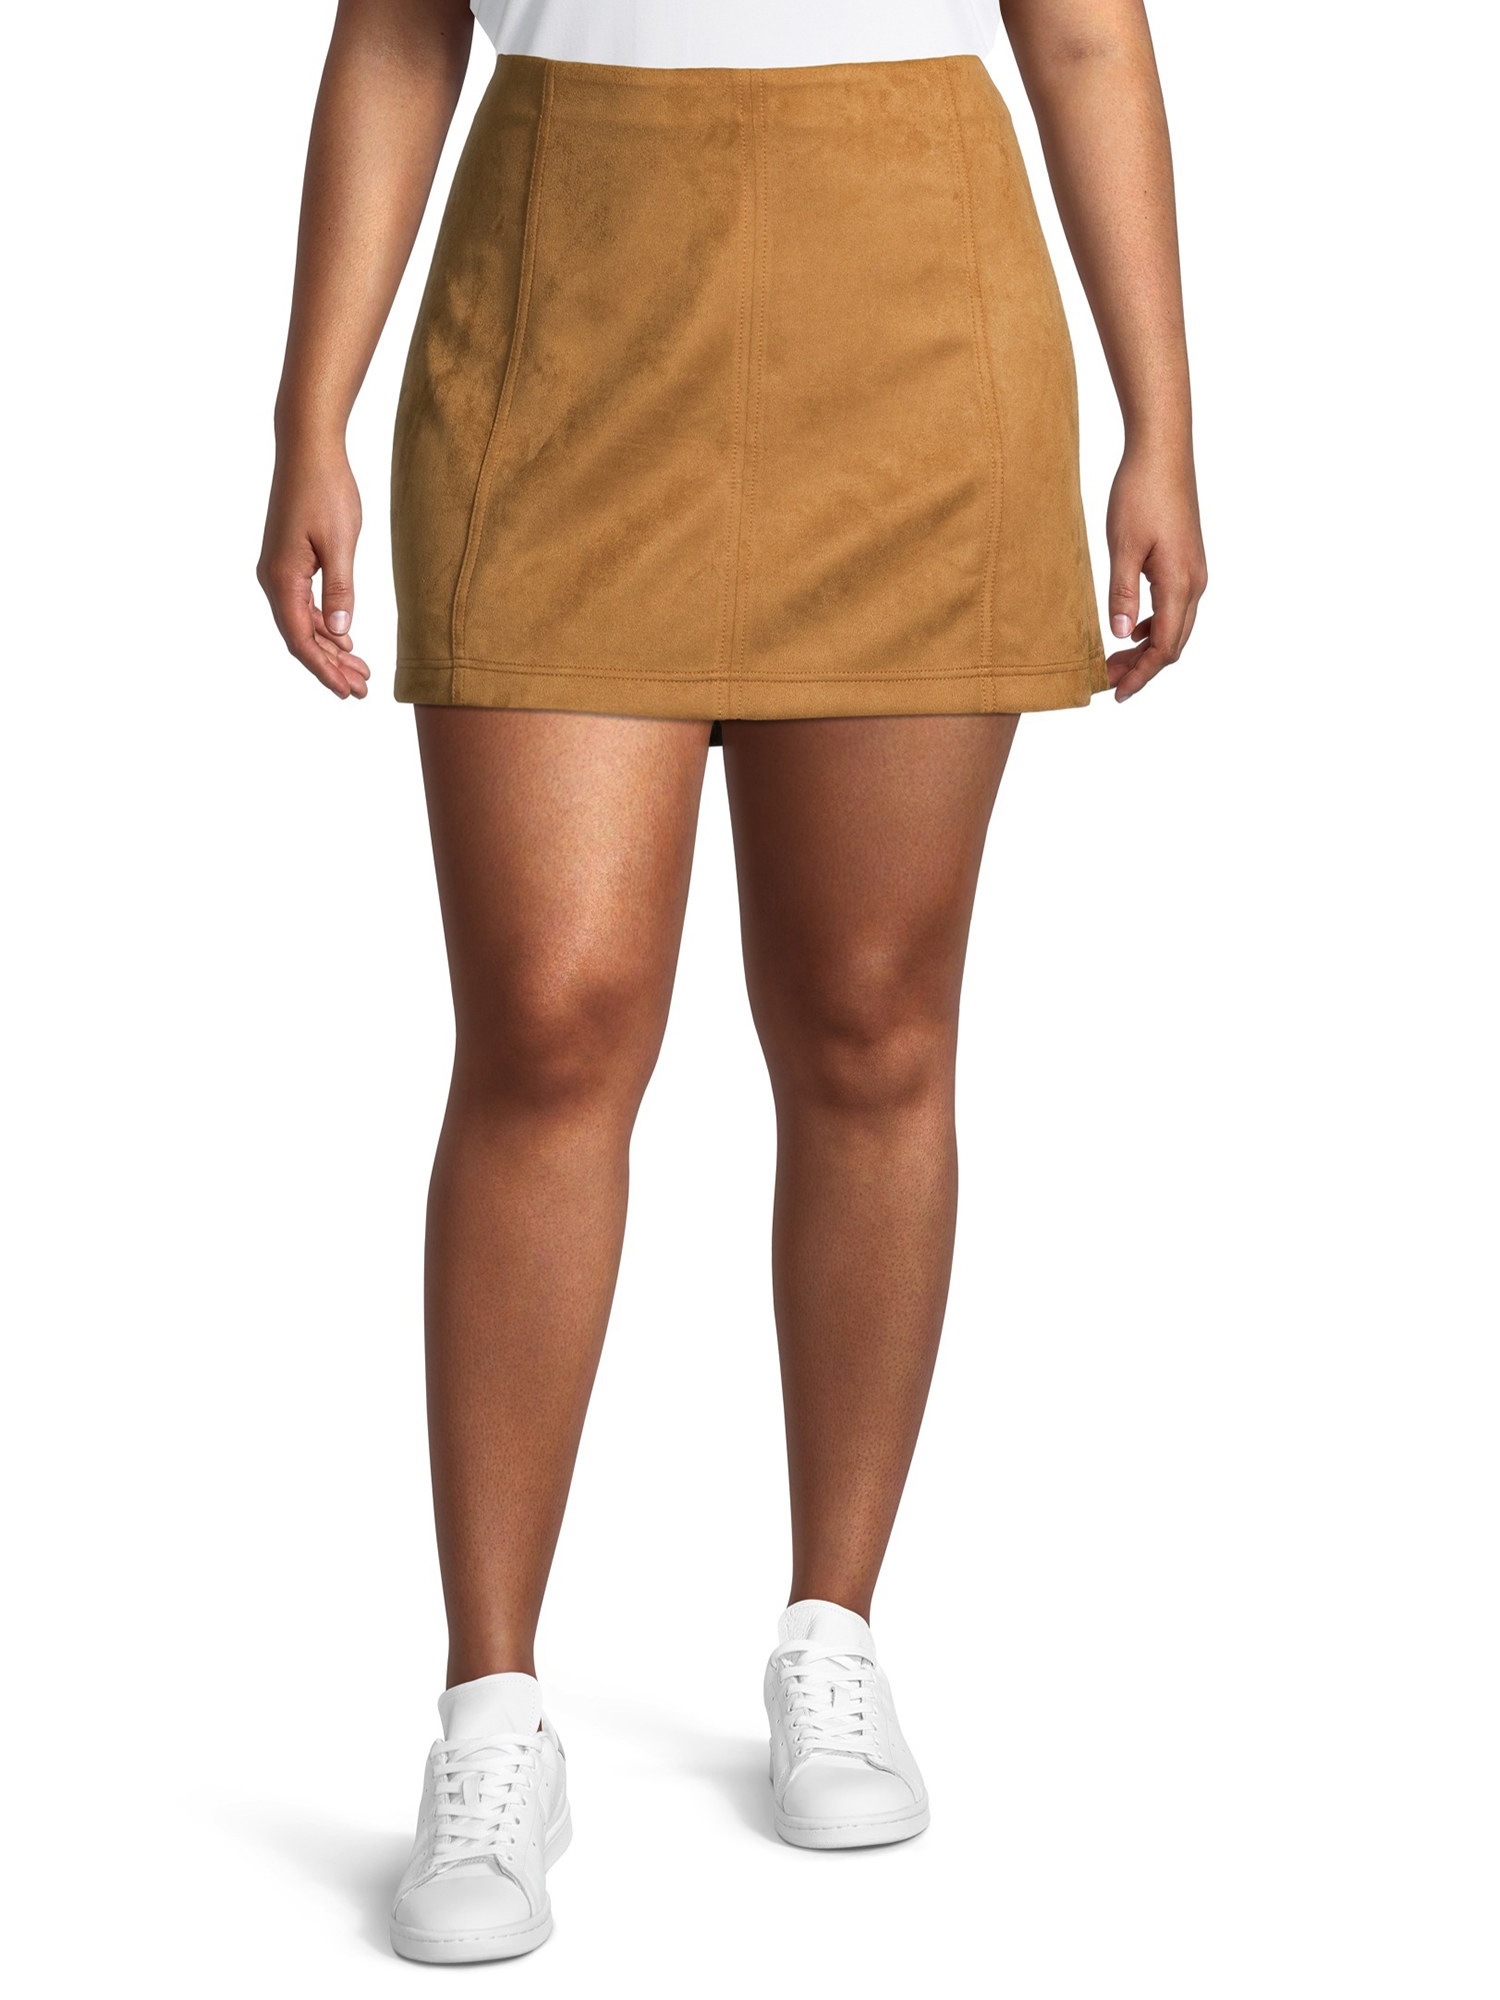 Model wearing tan mini skirt.